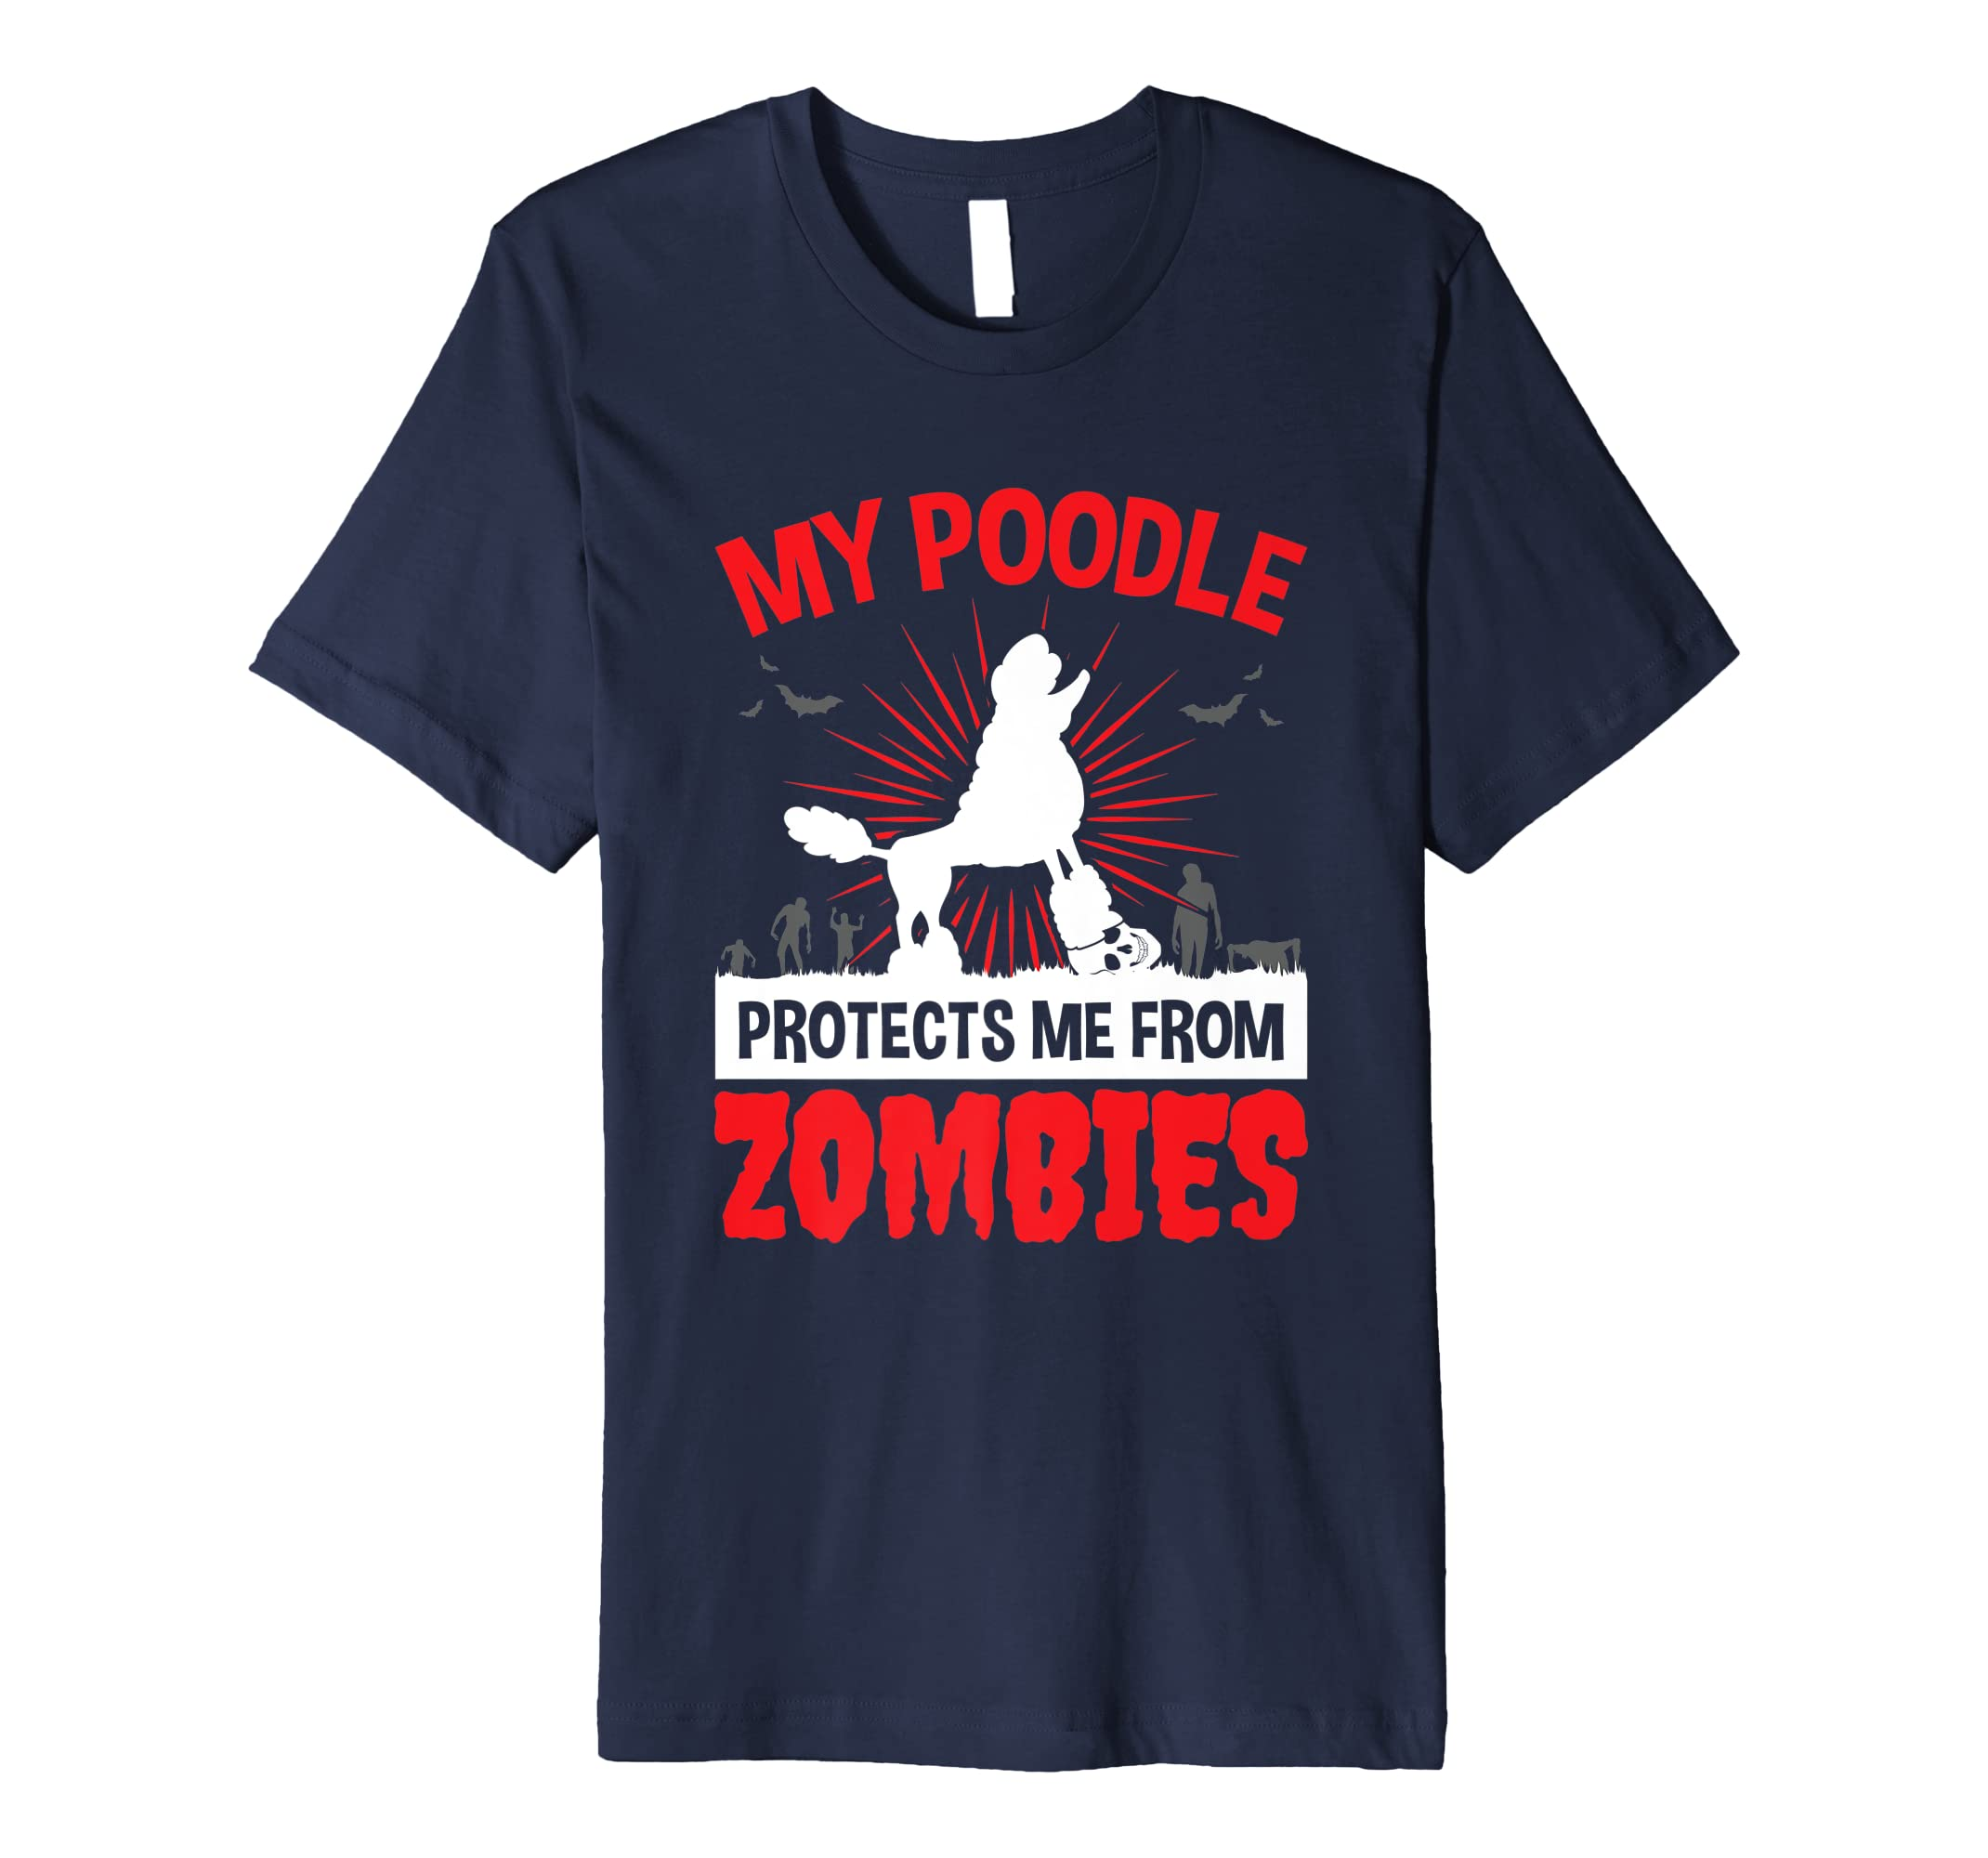 c55ec54c8 Amazon.com: Mens My Poodle Protects Me From Zombies TShirt Funny Gifts:  Clothing